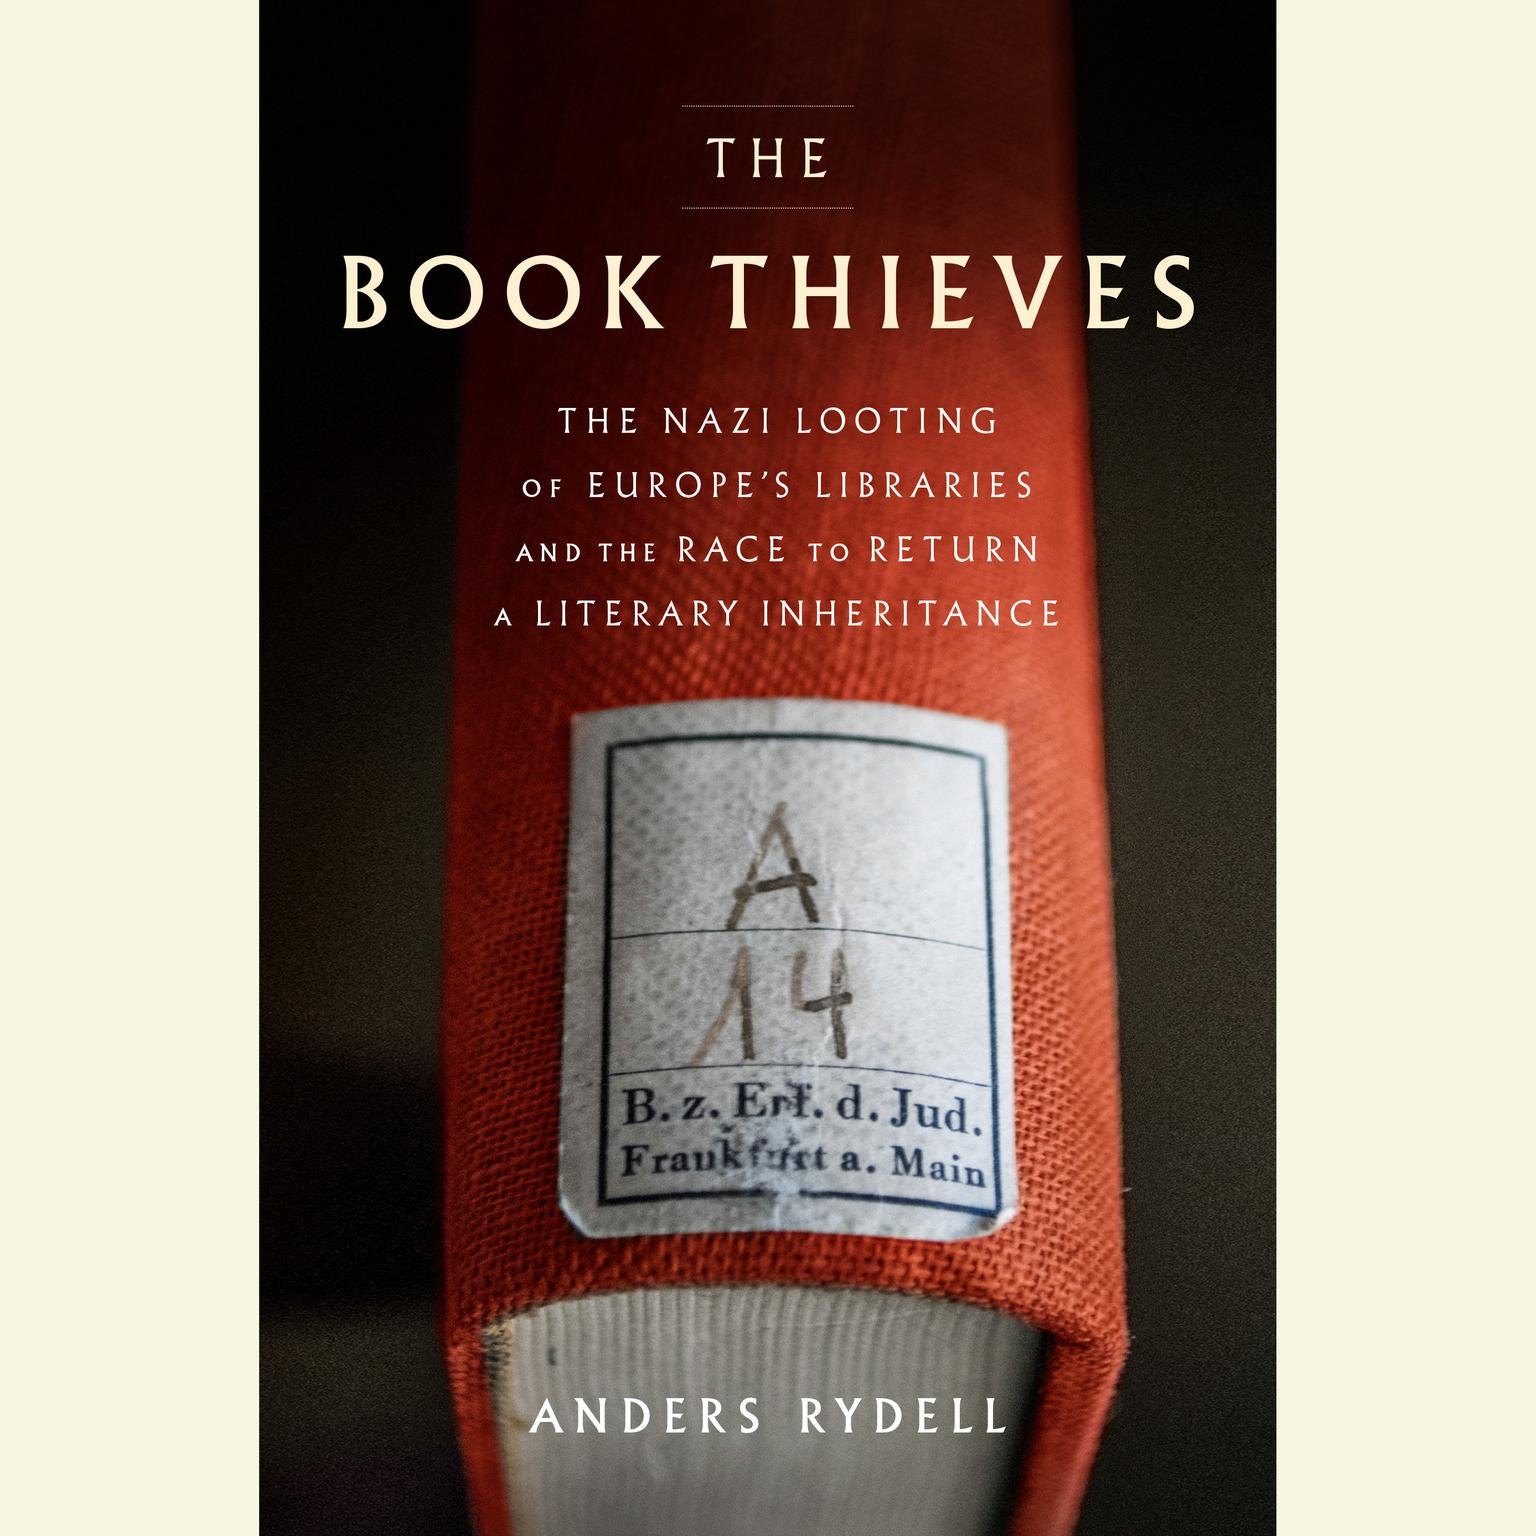 Printable The Book Thieves: The Nazi Looting of Europe's Libraries and the Race to Return a Literary Inheritance Audiobook Cover Art